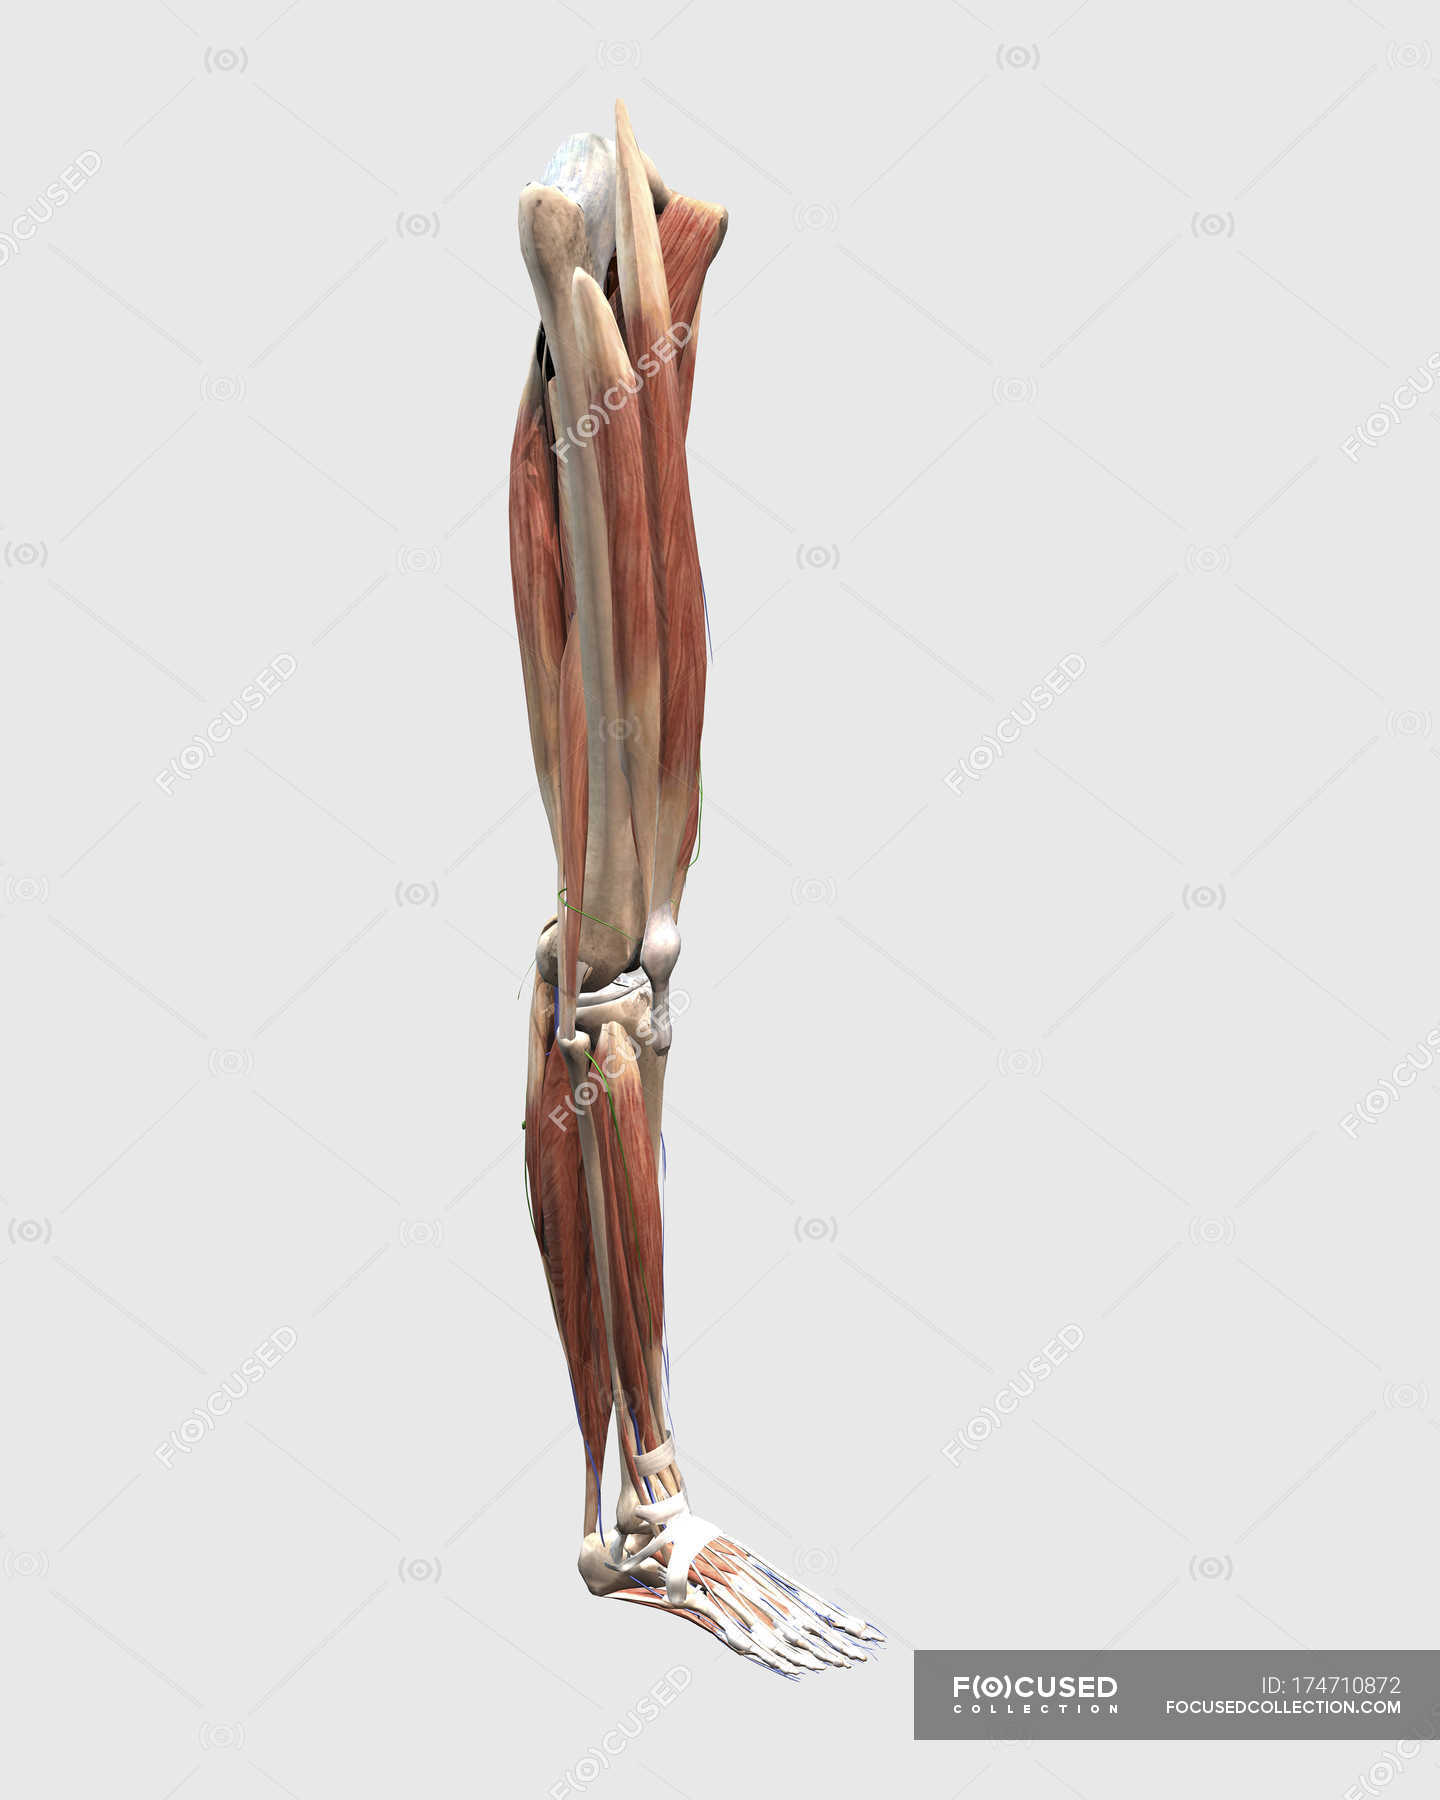 Medical Illustration Of Human Leg Muscles Bones And Joints Stock